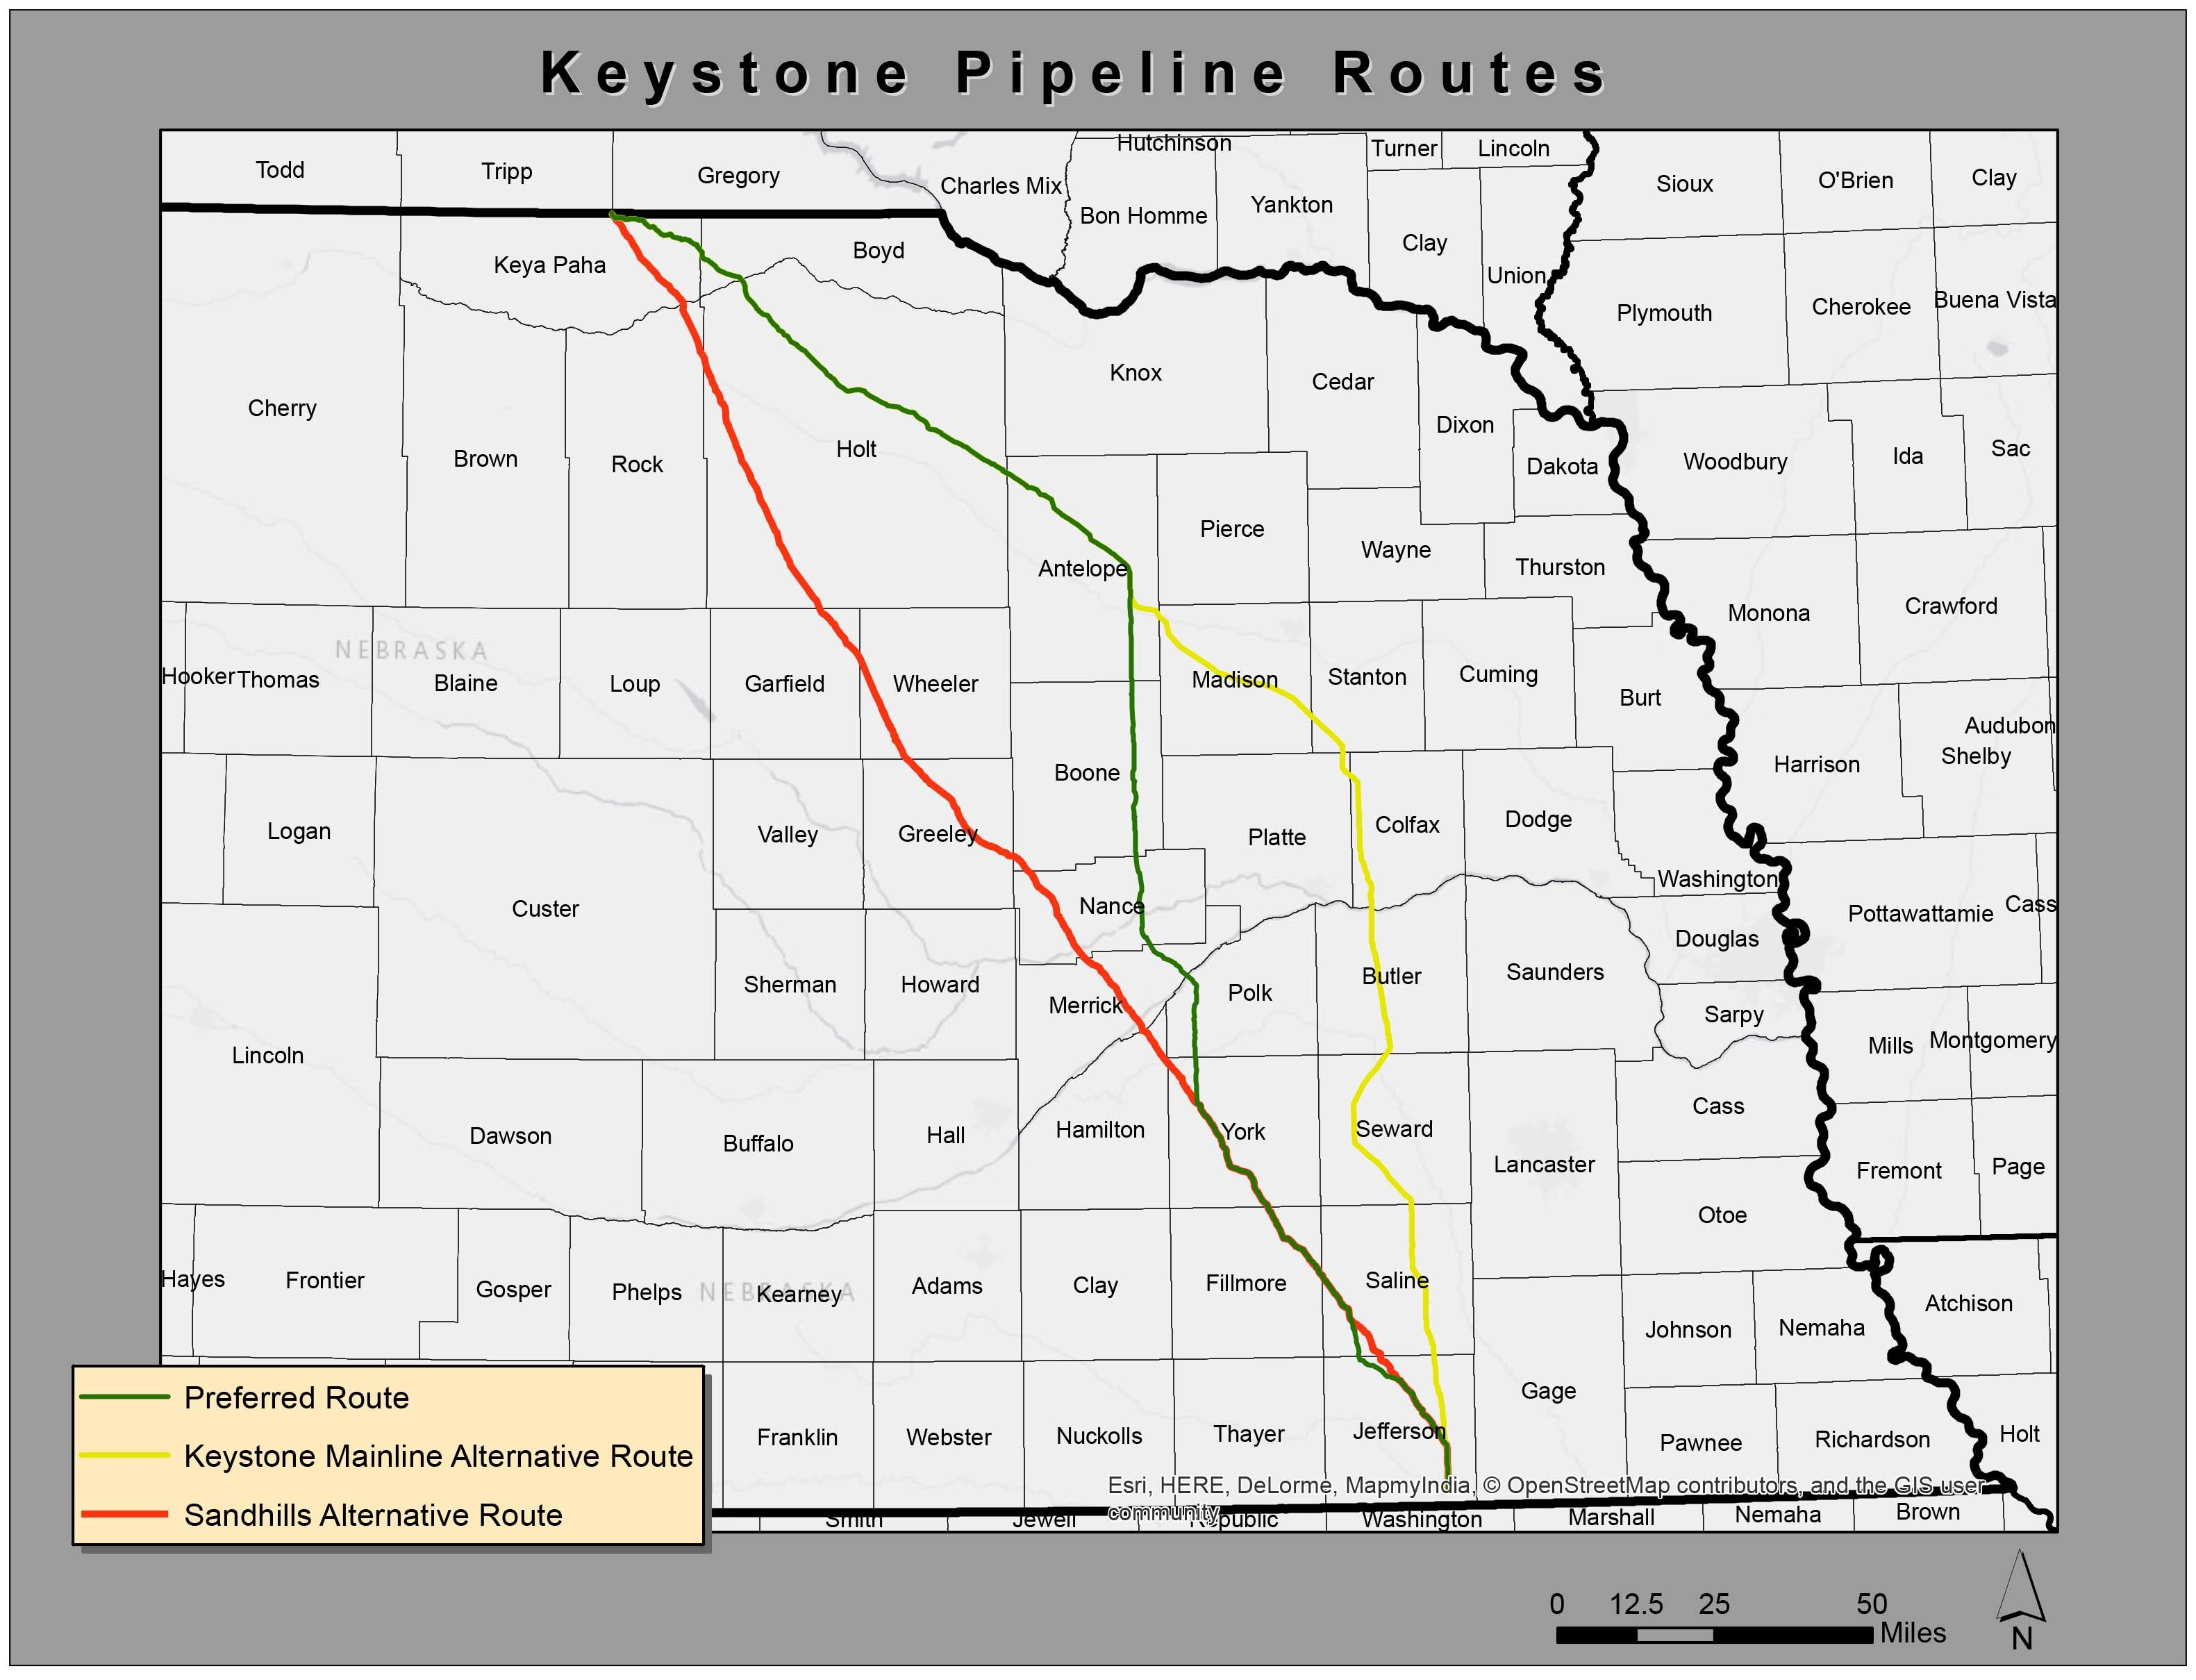 Nebraska approves alternate route for Keystone XL pipeline